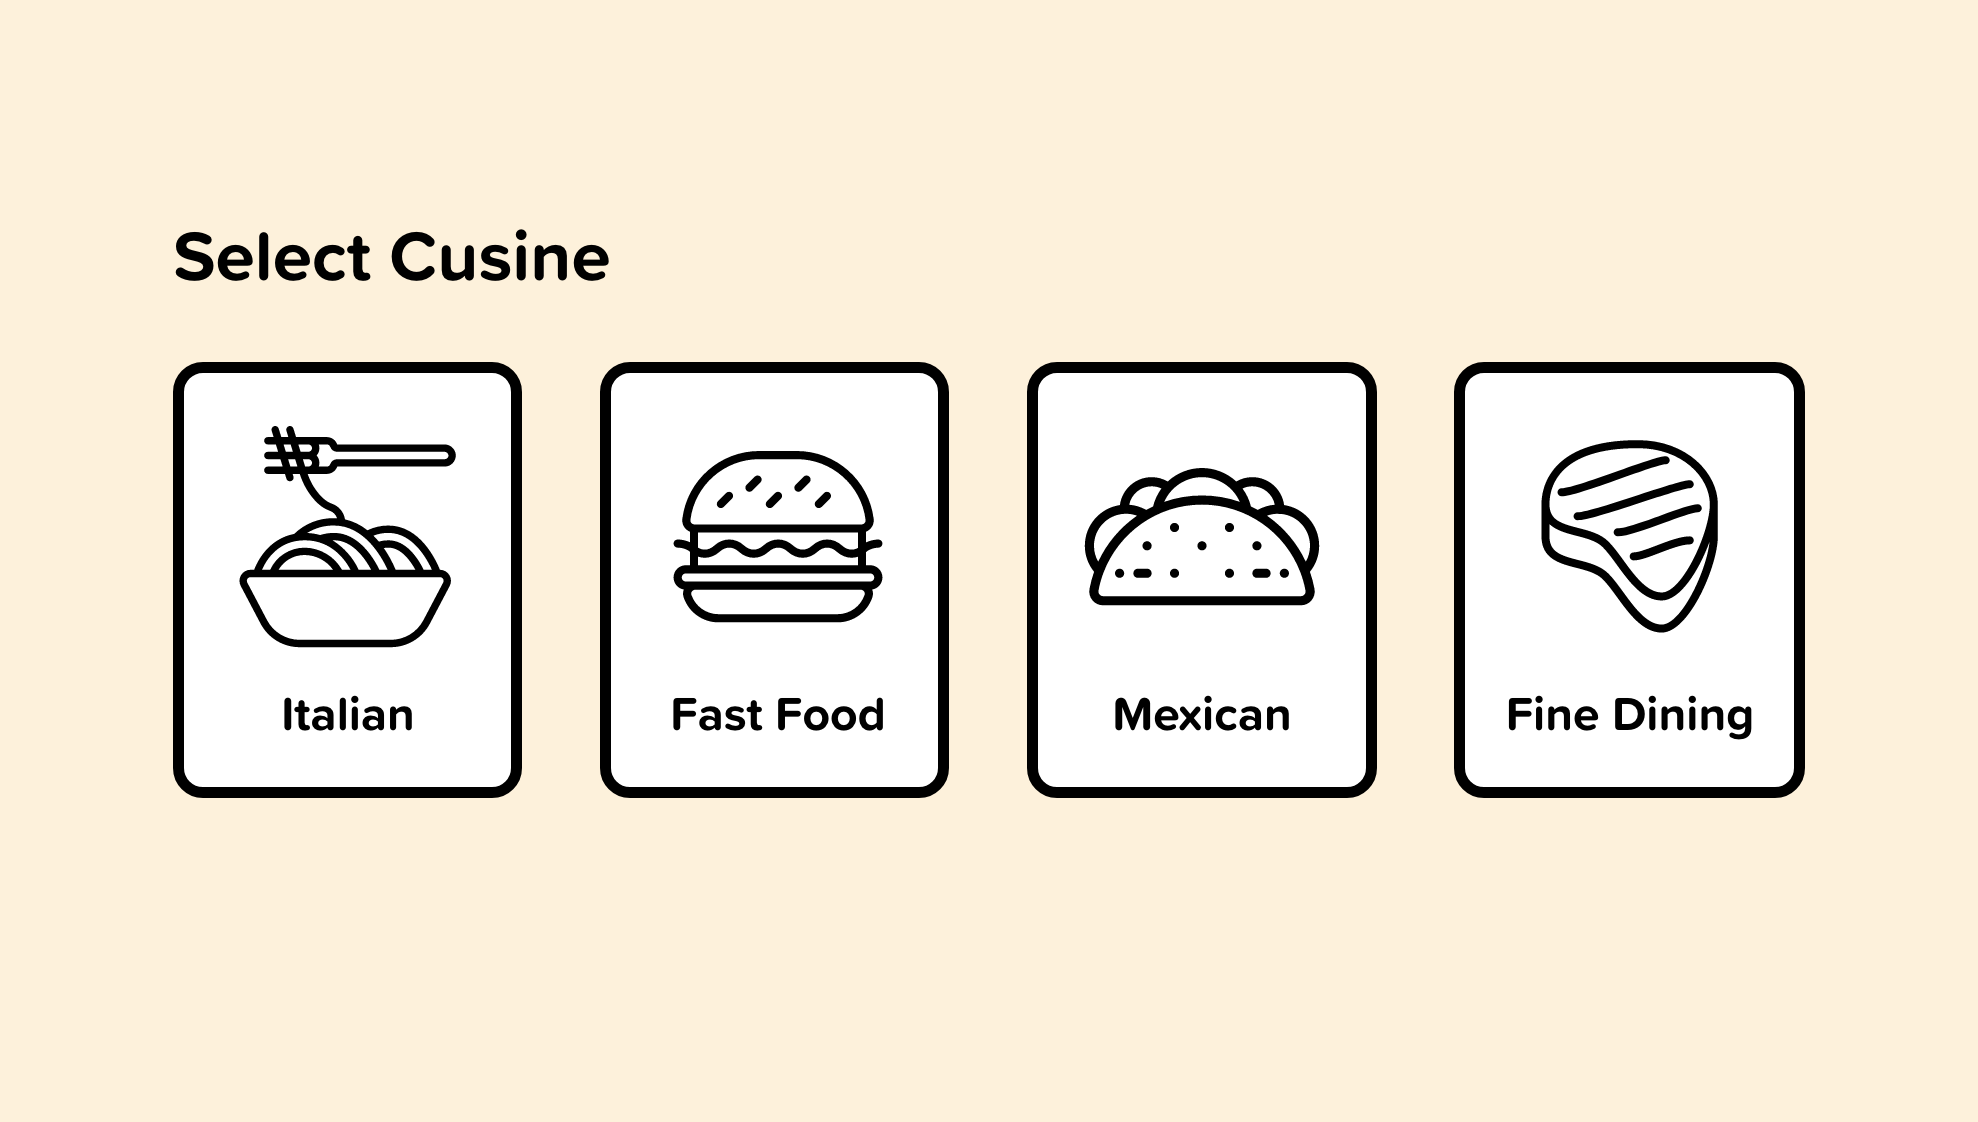 Visual icons displaying types of cuisine available